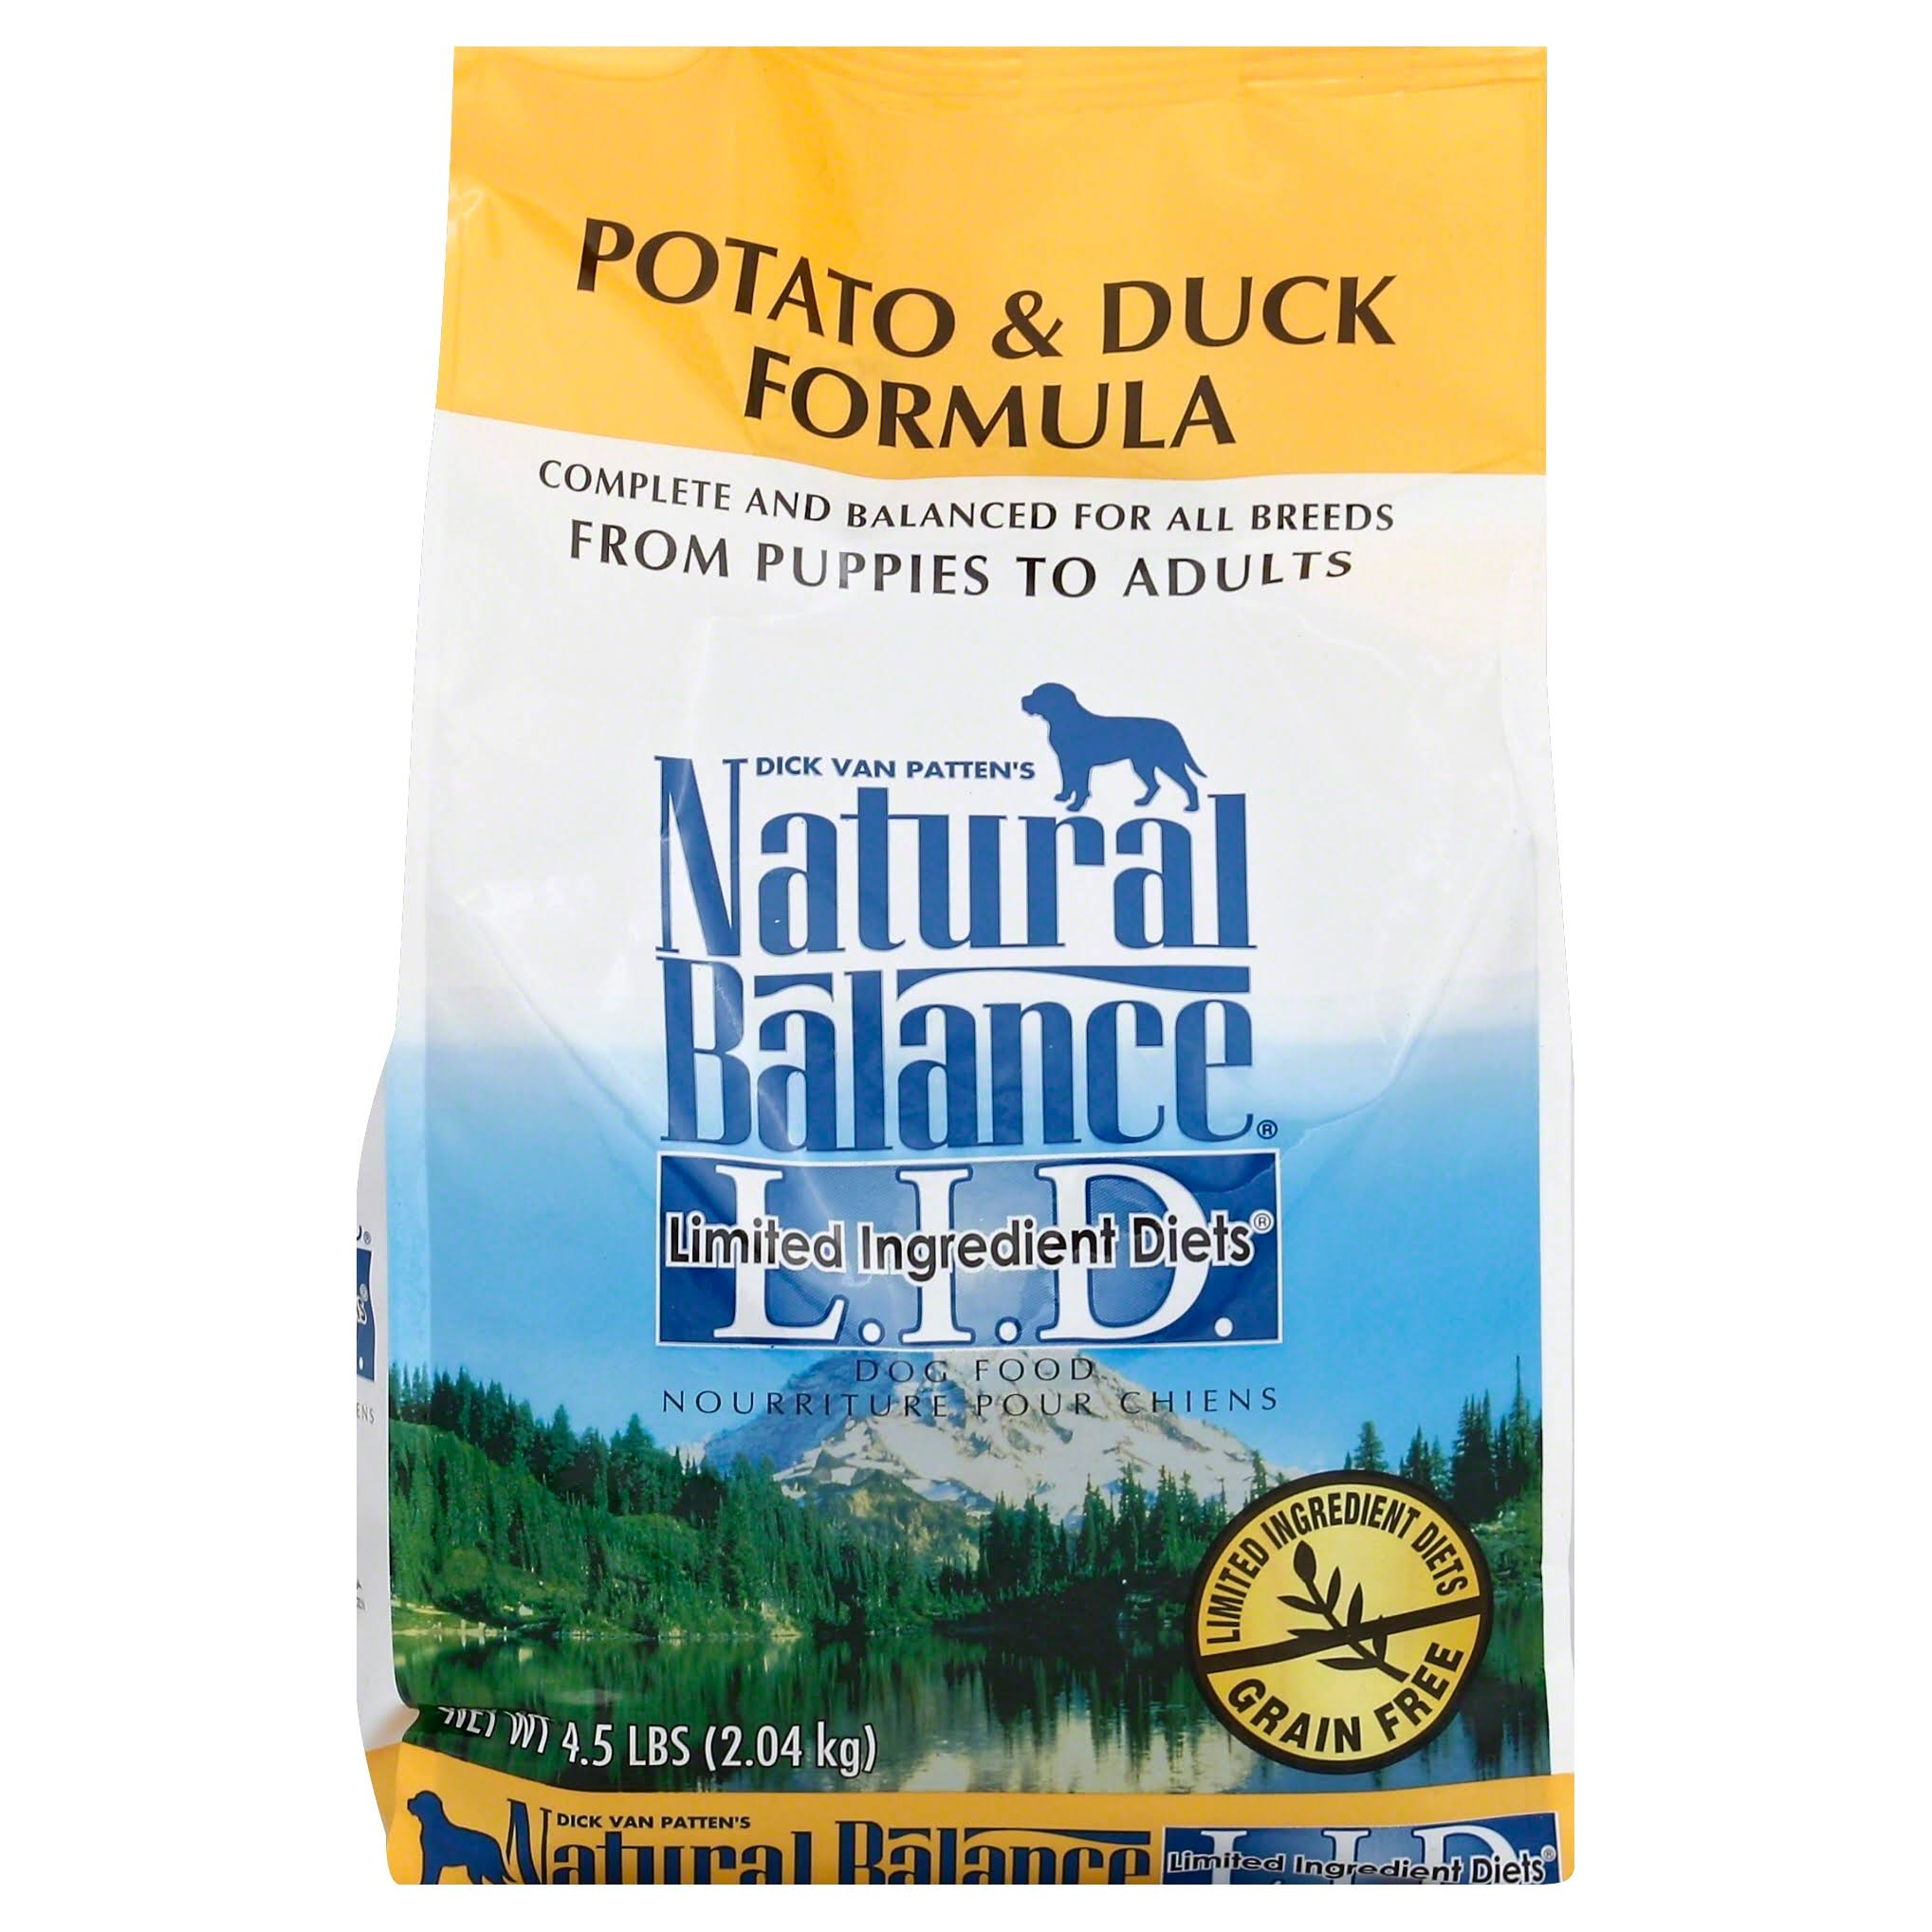 Natural Balance L.I.D. Limited Ingredient Diets Dog Food, Potato & Duck Formula, from Puppies to Adults - 4.5 lb